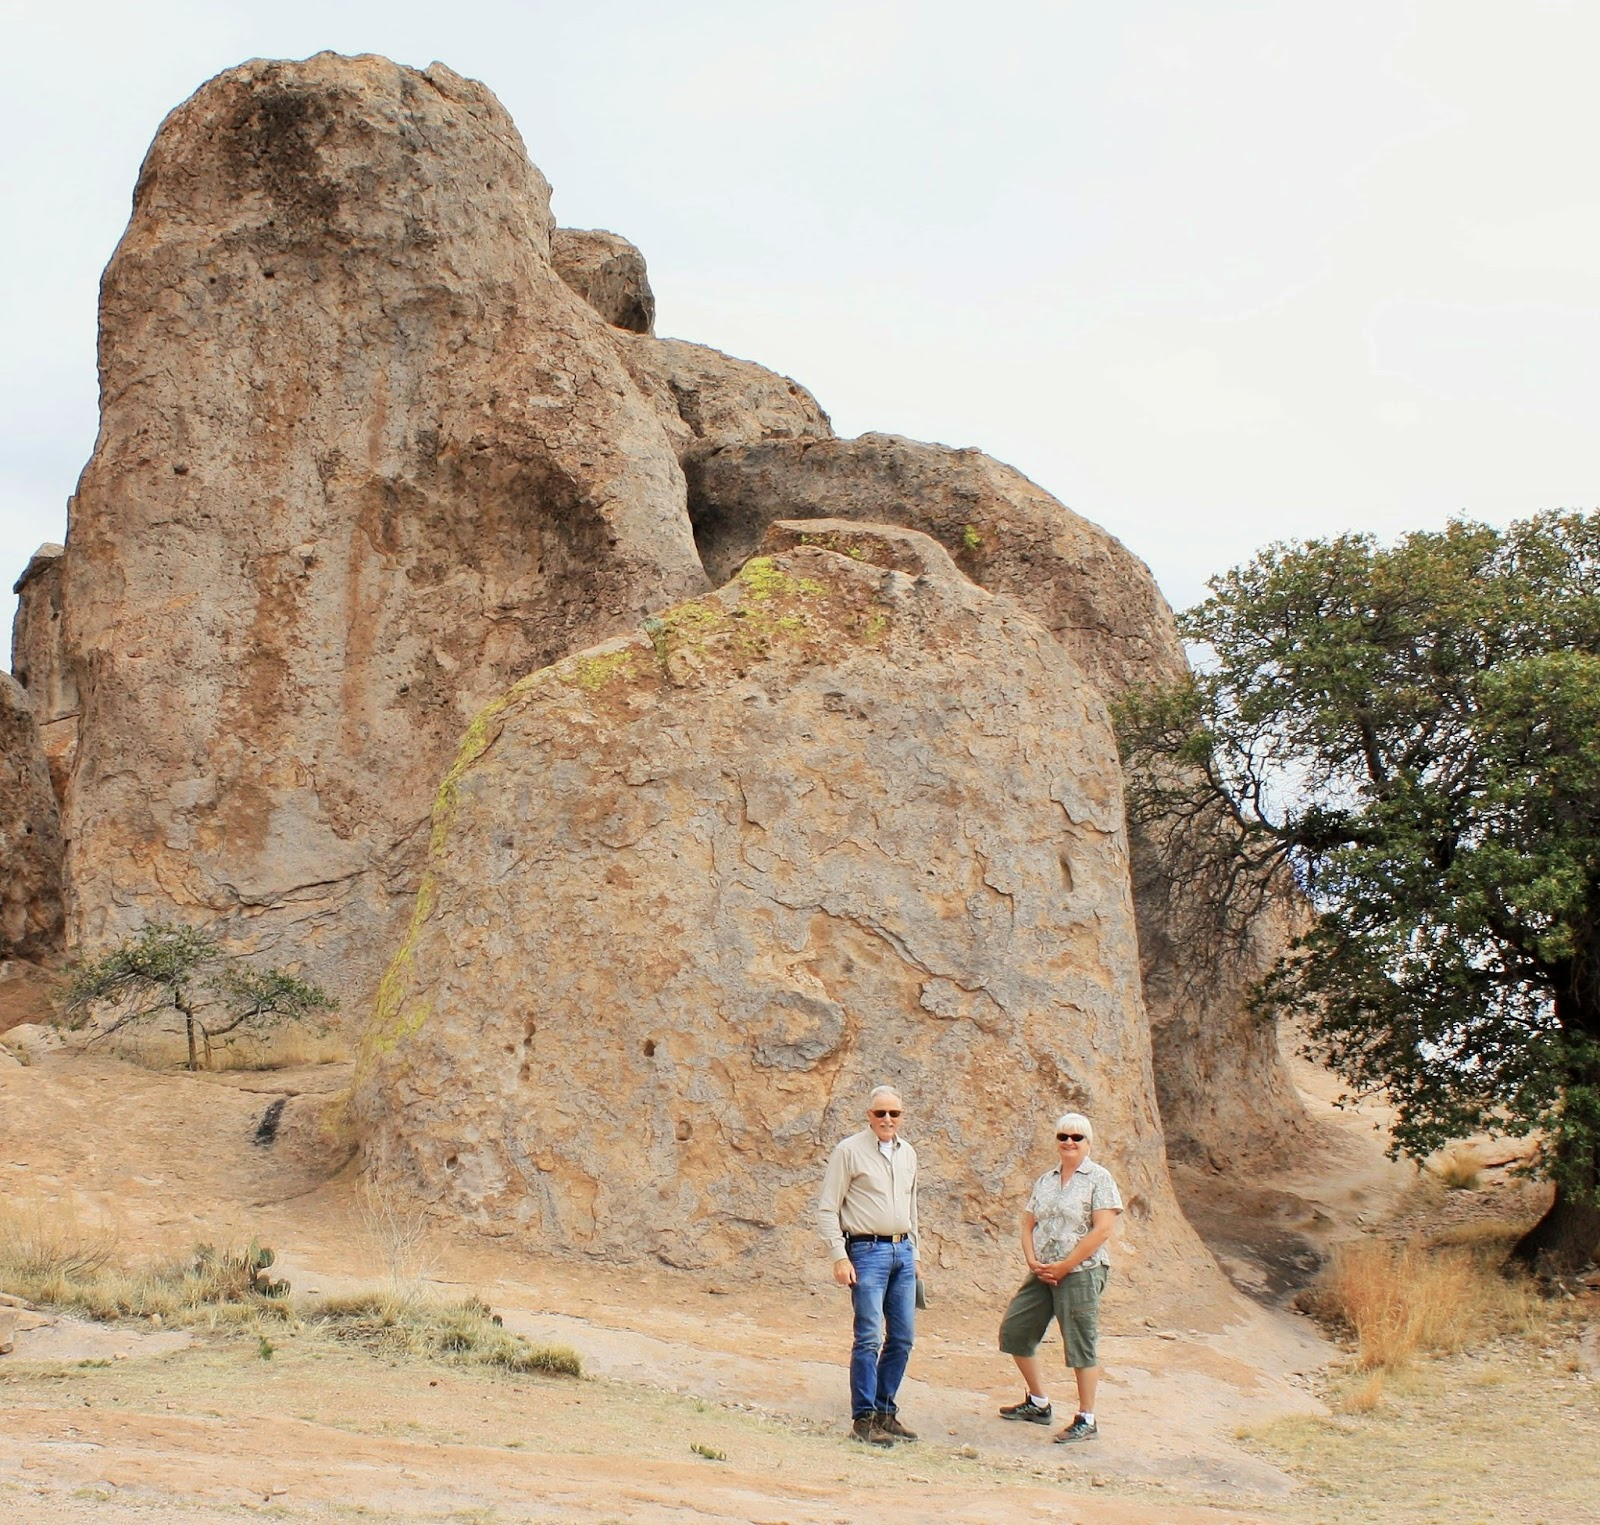 Jeff and Joan pose in front of a large boulder